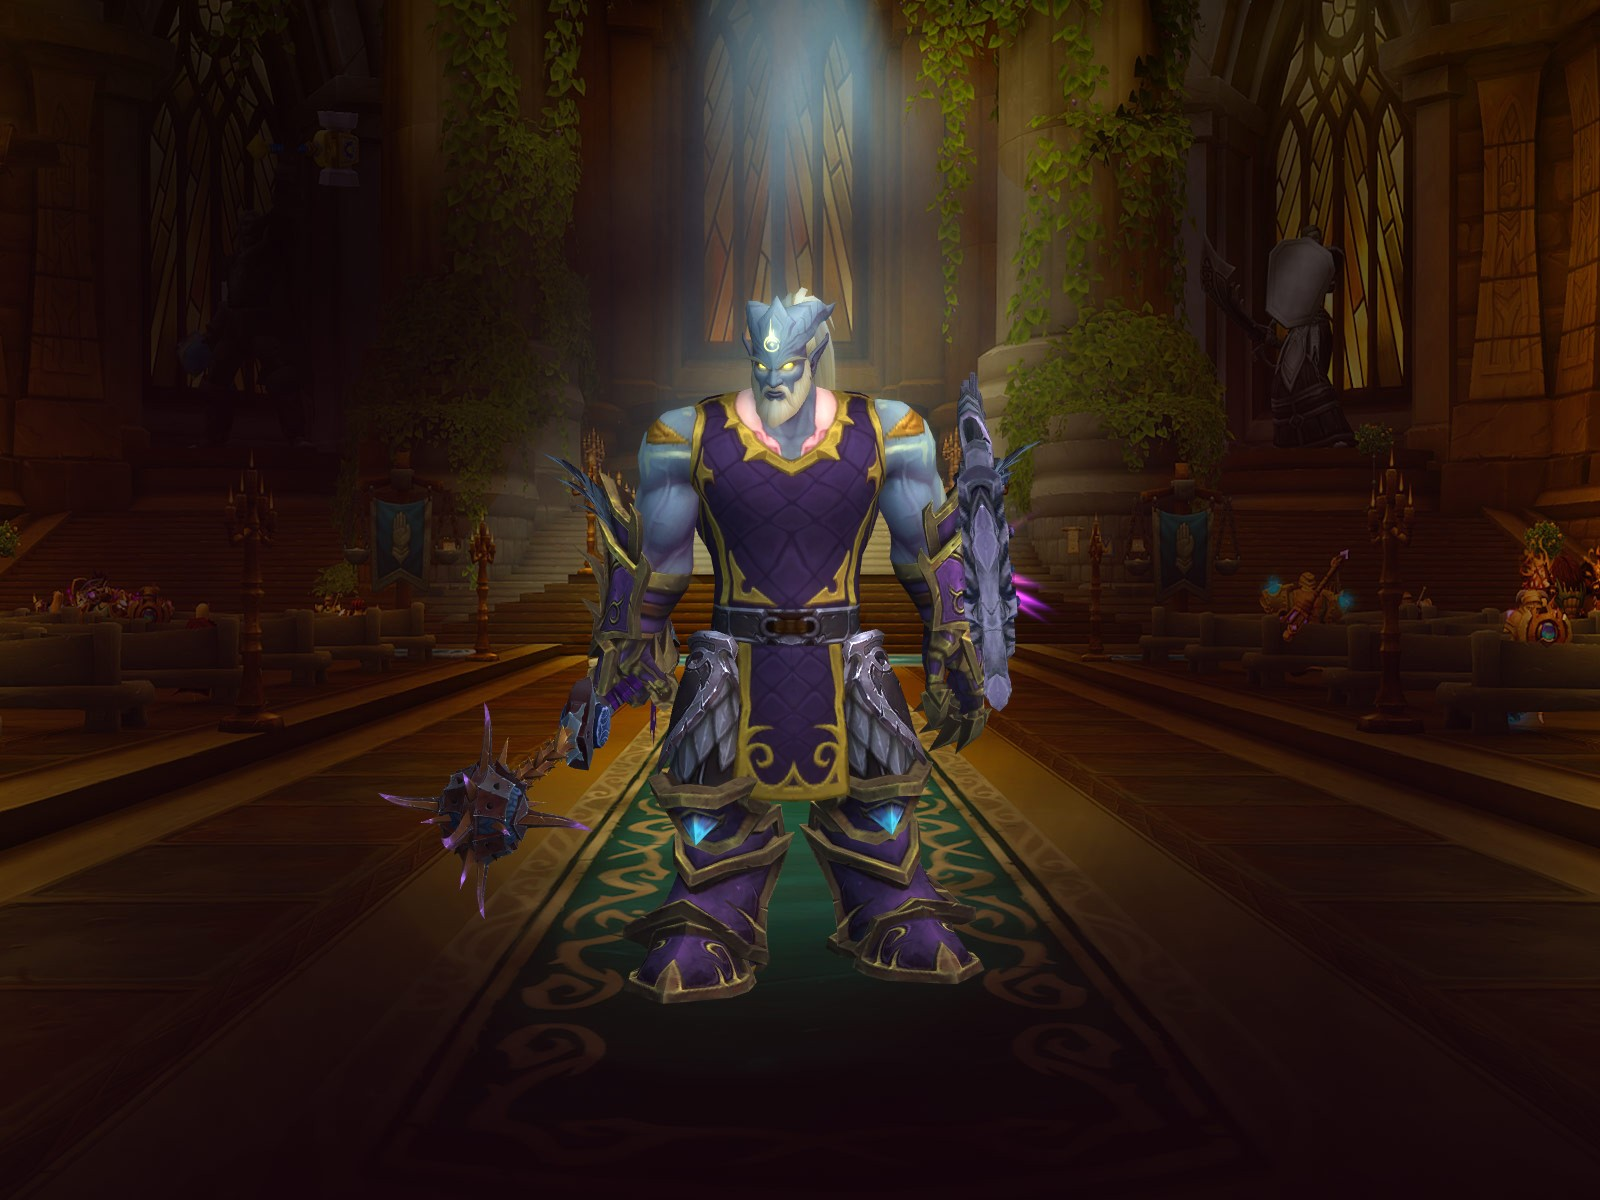 8 1 Glad Prot Paladin 'Nerd Cleave' Arena Guide - Paladin - World of